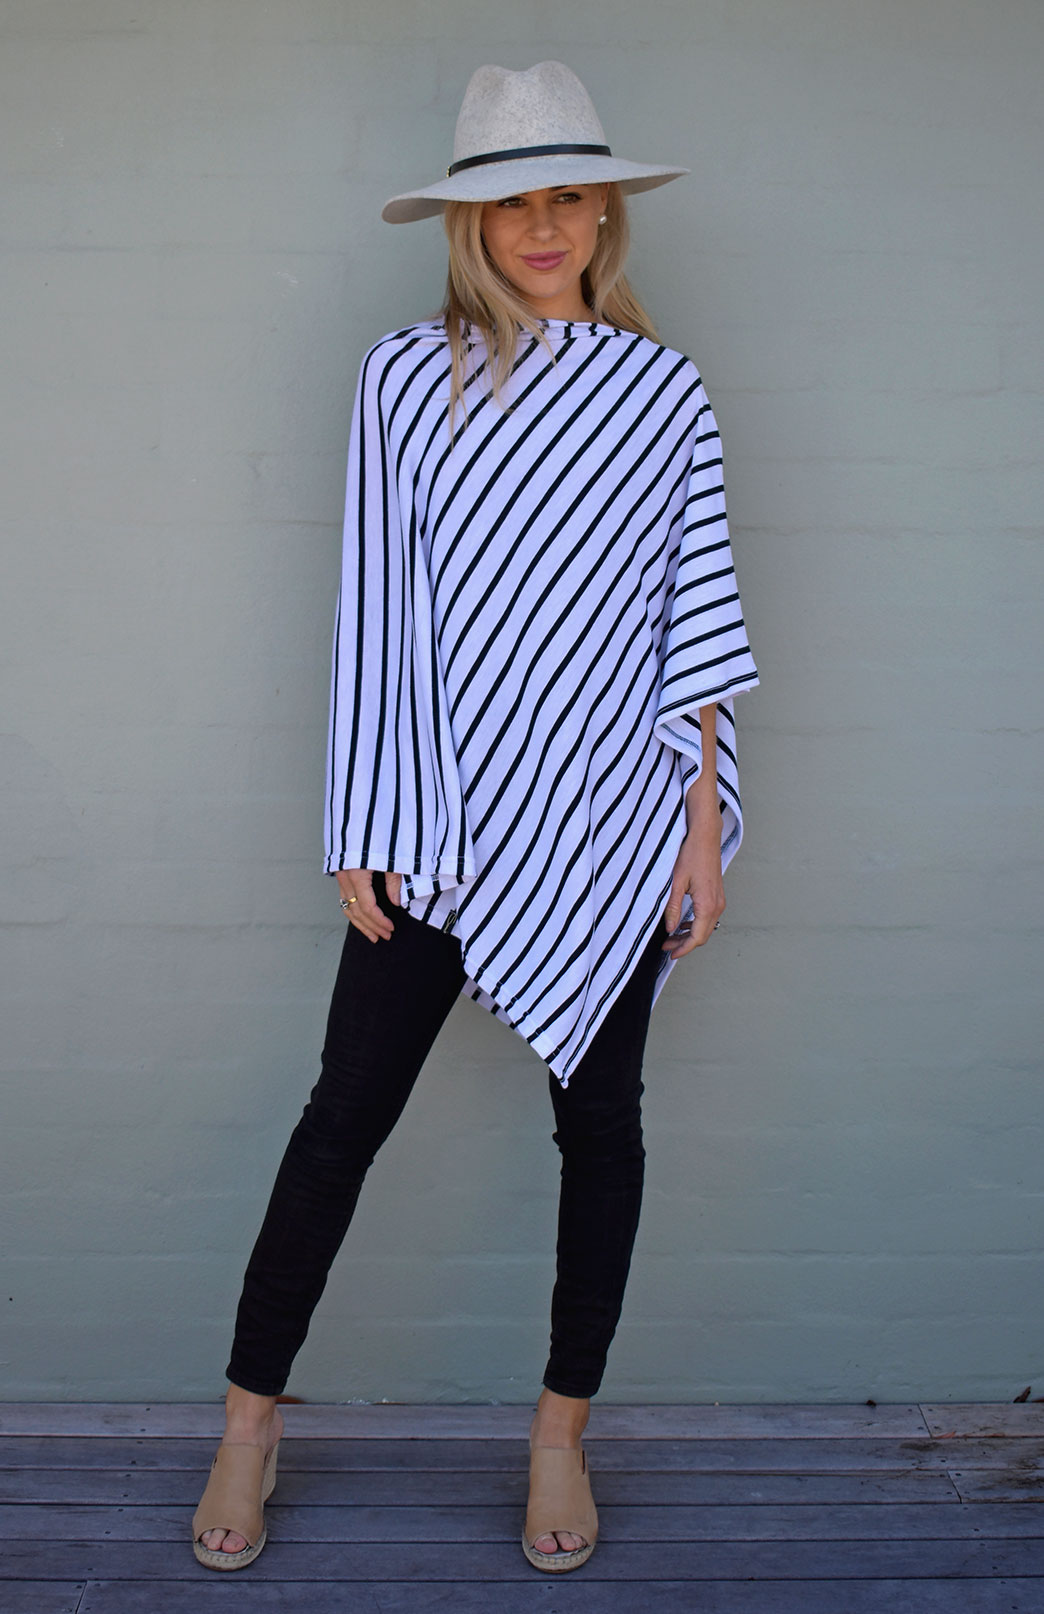 Classic Poncho - Women's Black and White Striped Merino Wool Classic Poncho for travel - Smitten Merino Tasmania Australia